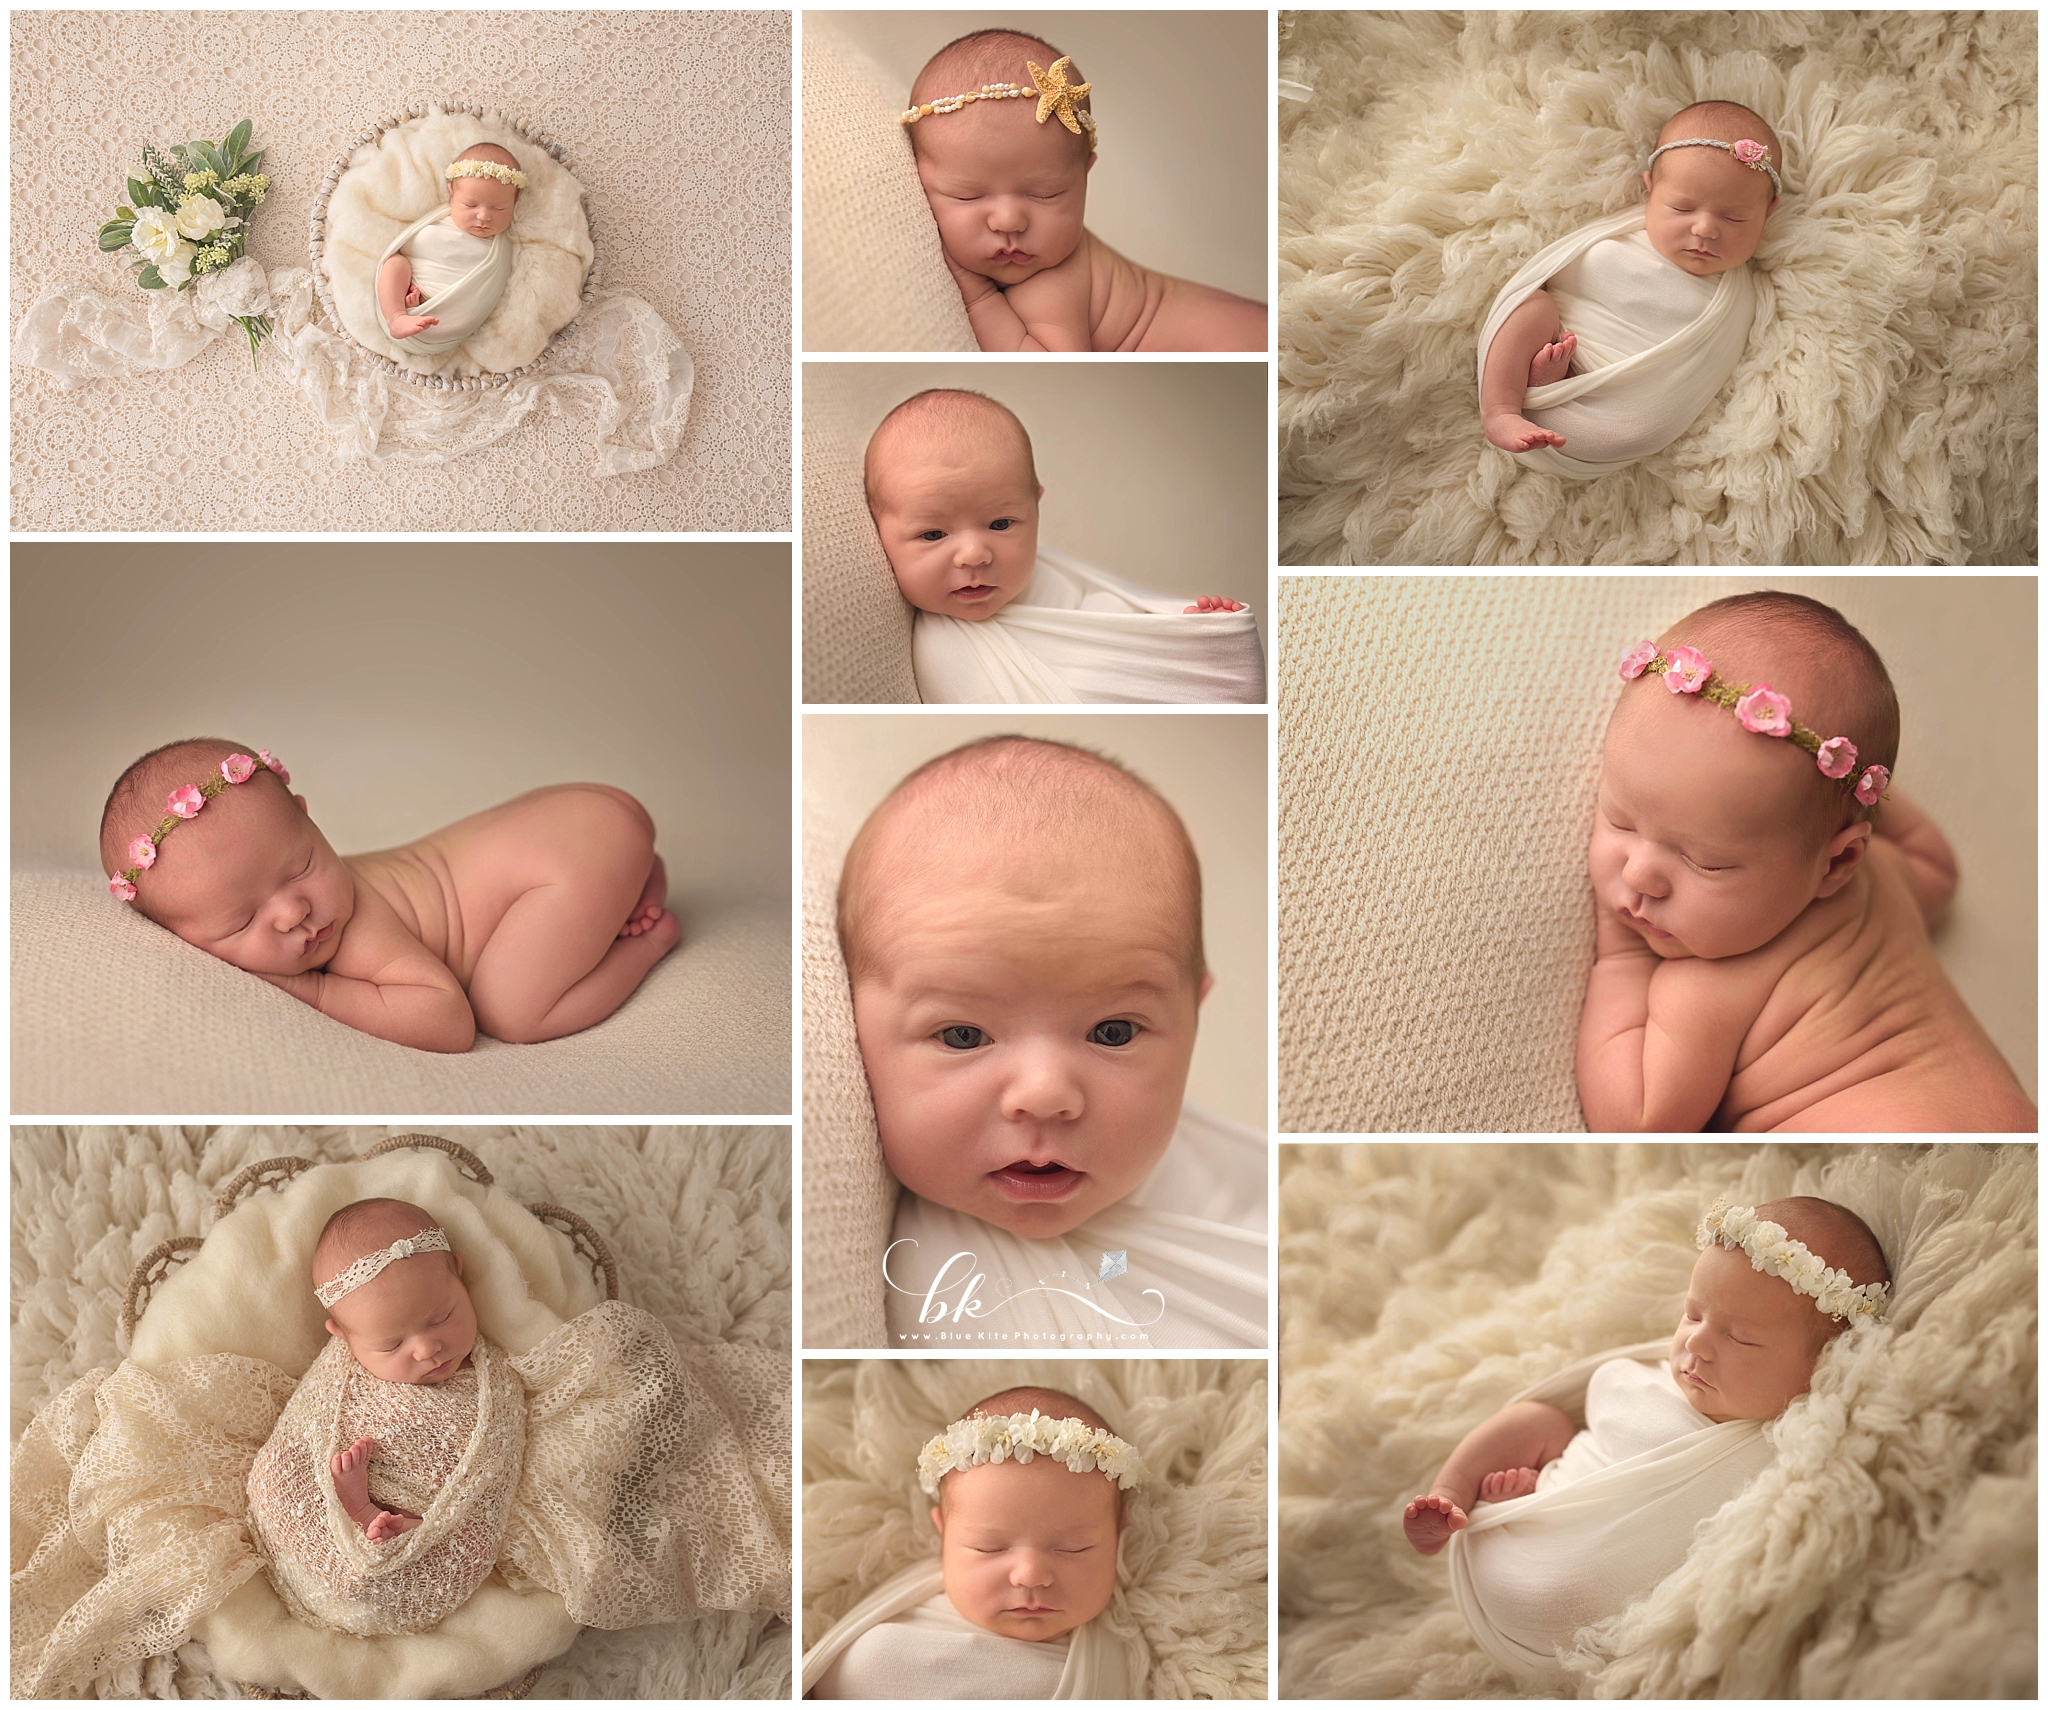 Boynton Beach newborn photographer